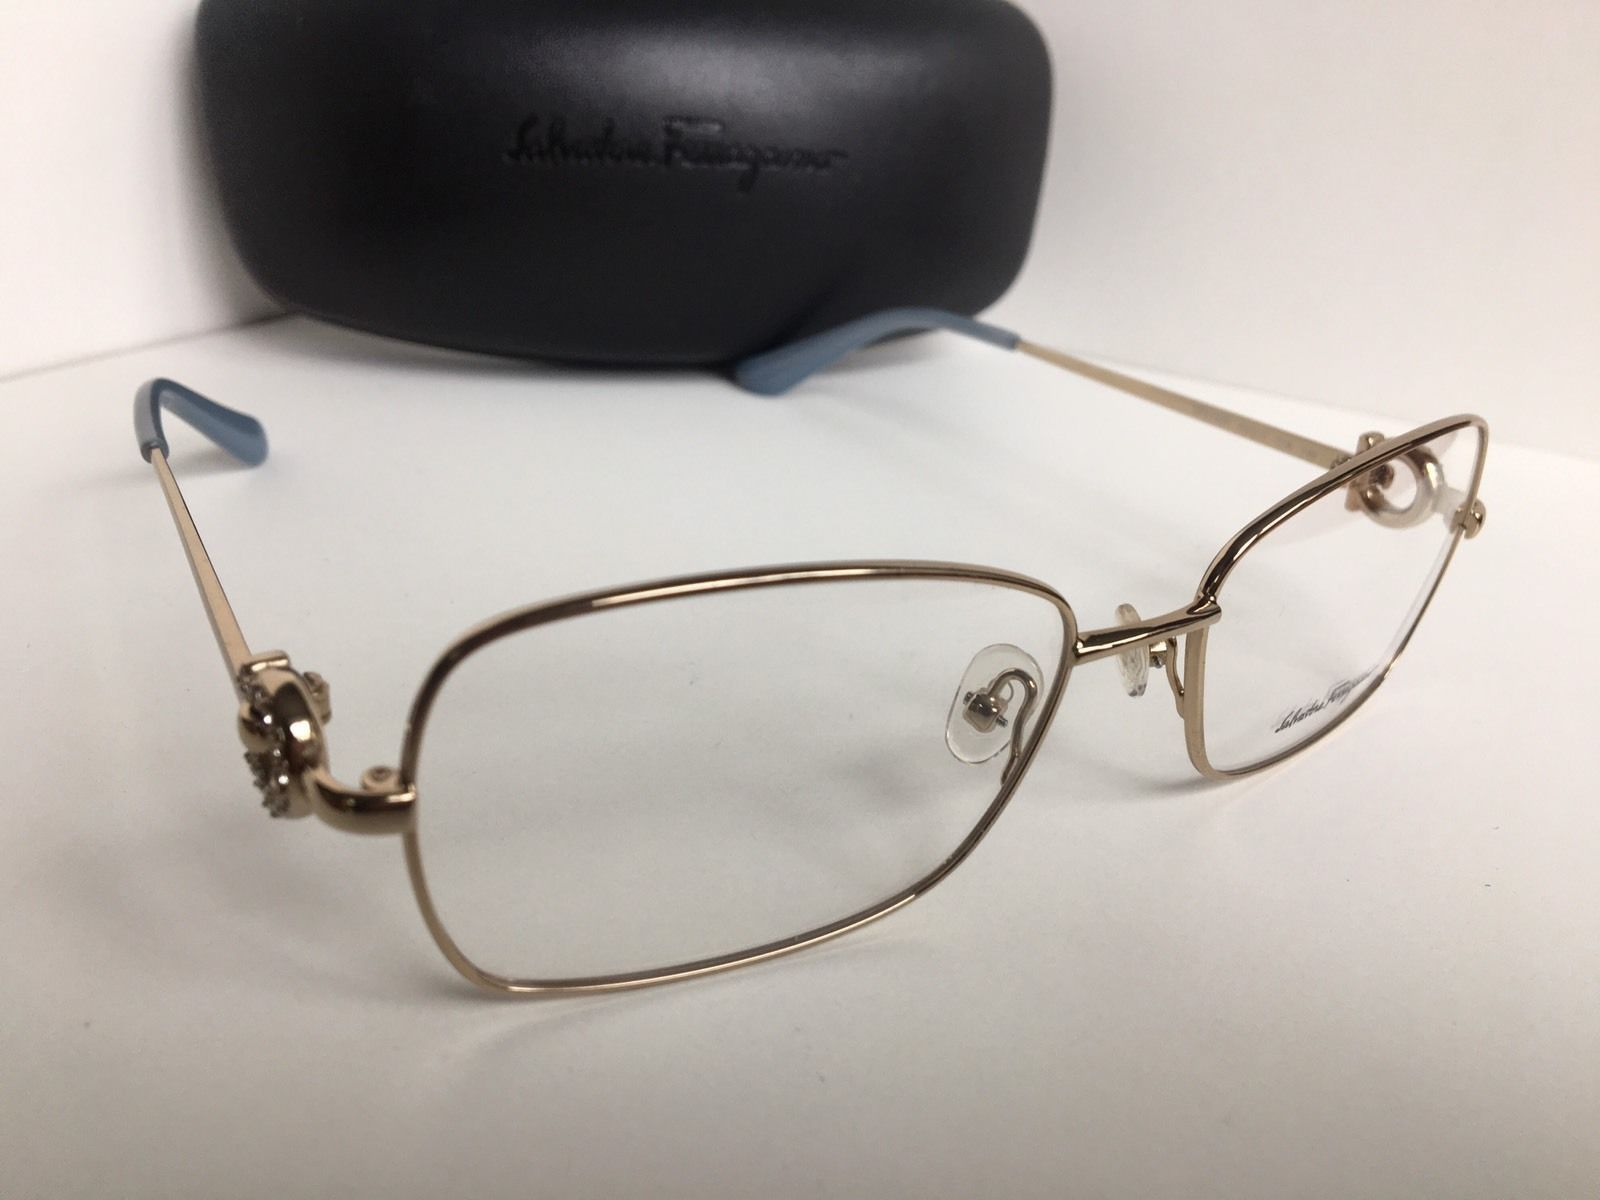 16666b0bd3 New Salvatore Ferragamo SF 2133R SF2133R 718 55mm Gold Women Eyeglasses  Frame